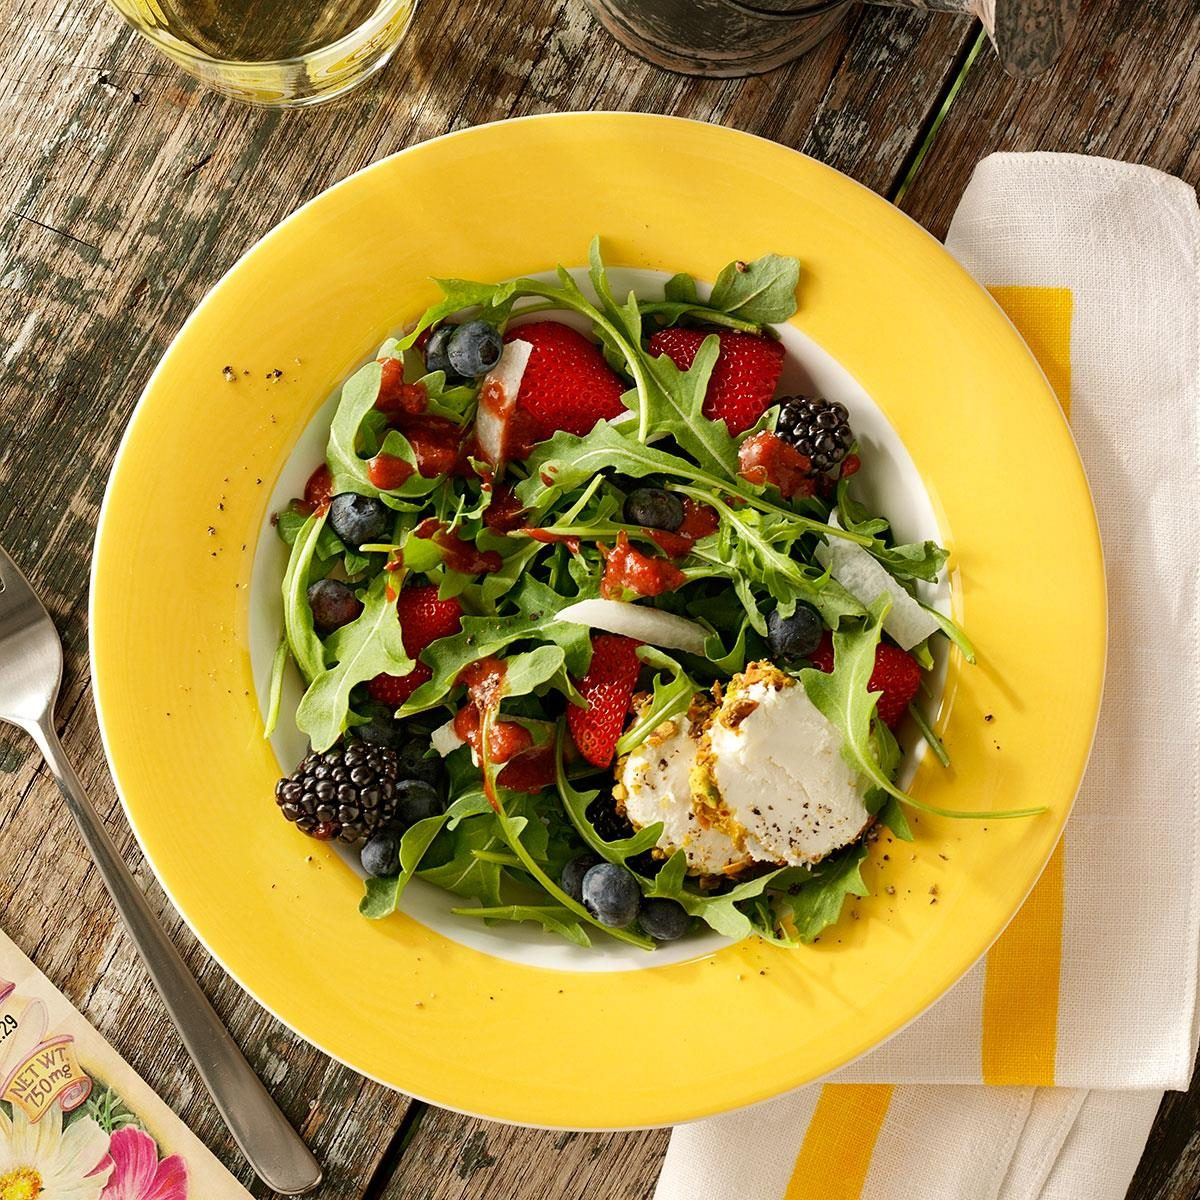 Arugula: Arugula Salad with Berry Dressing